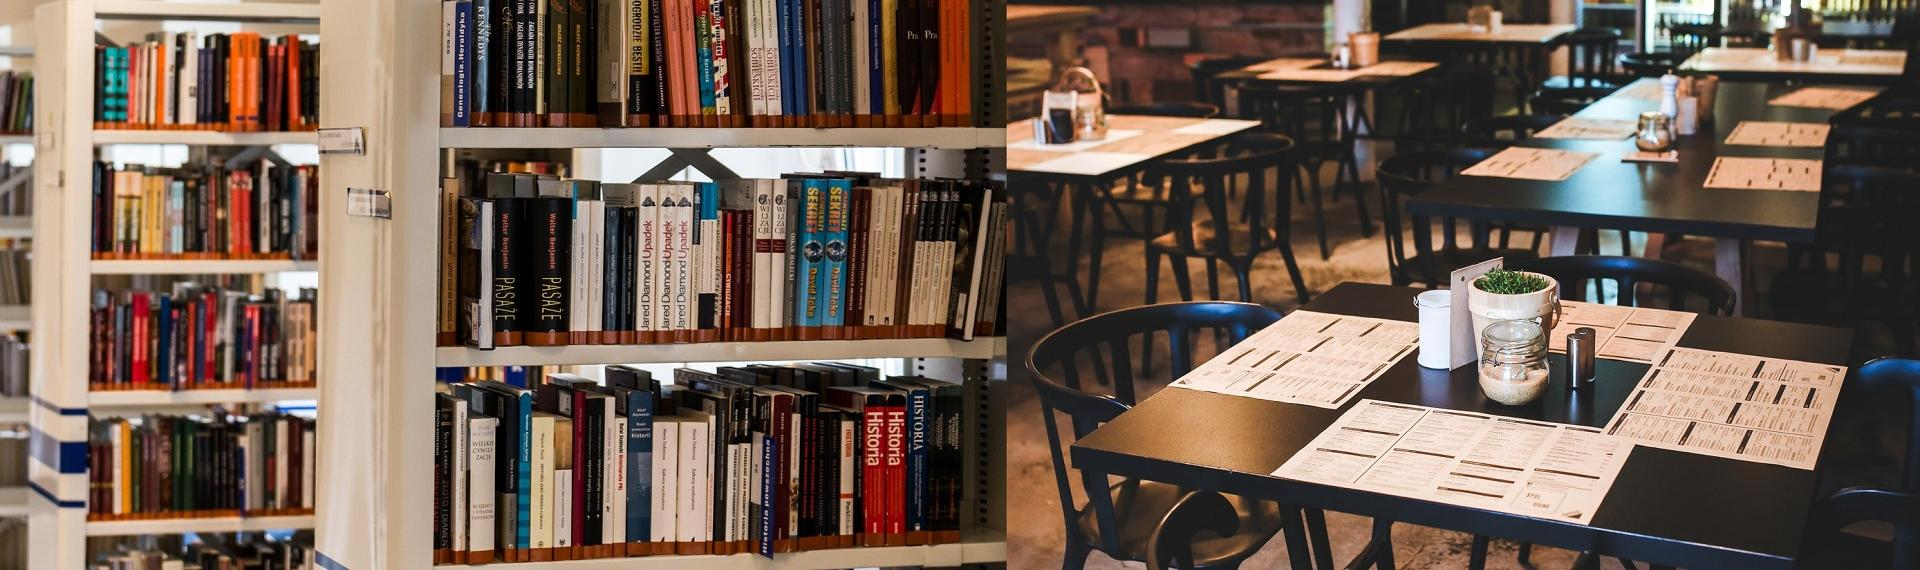 Split image of library shelves and empty restaurant